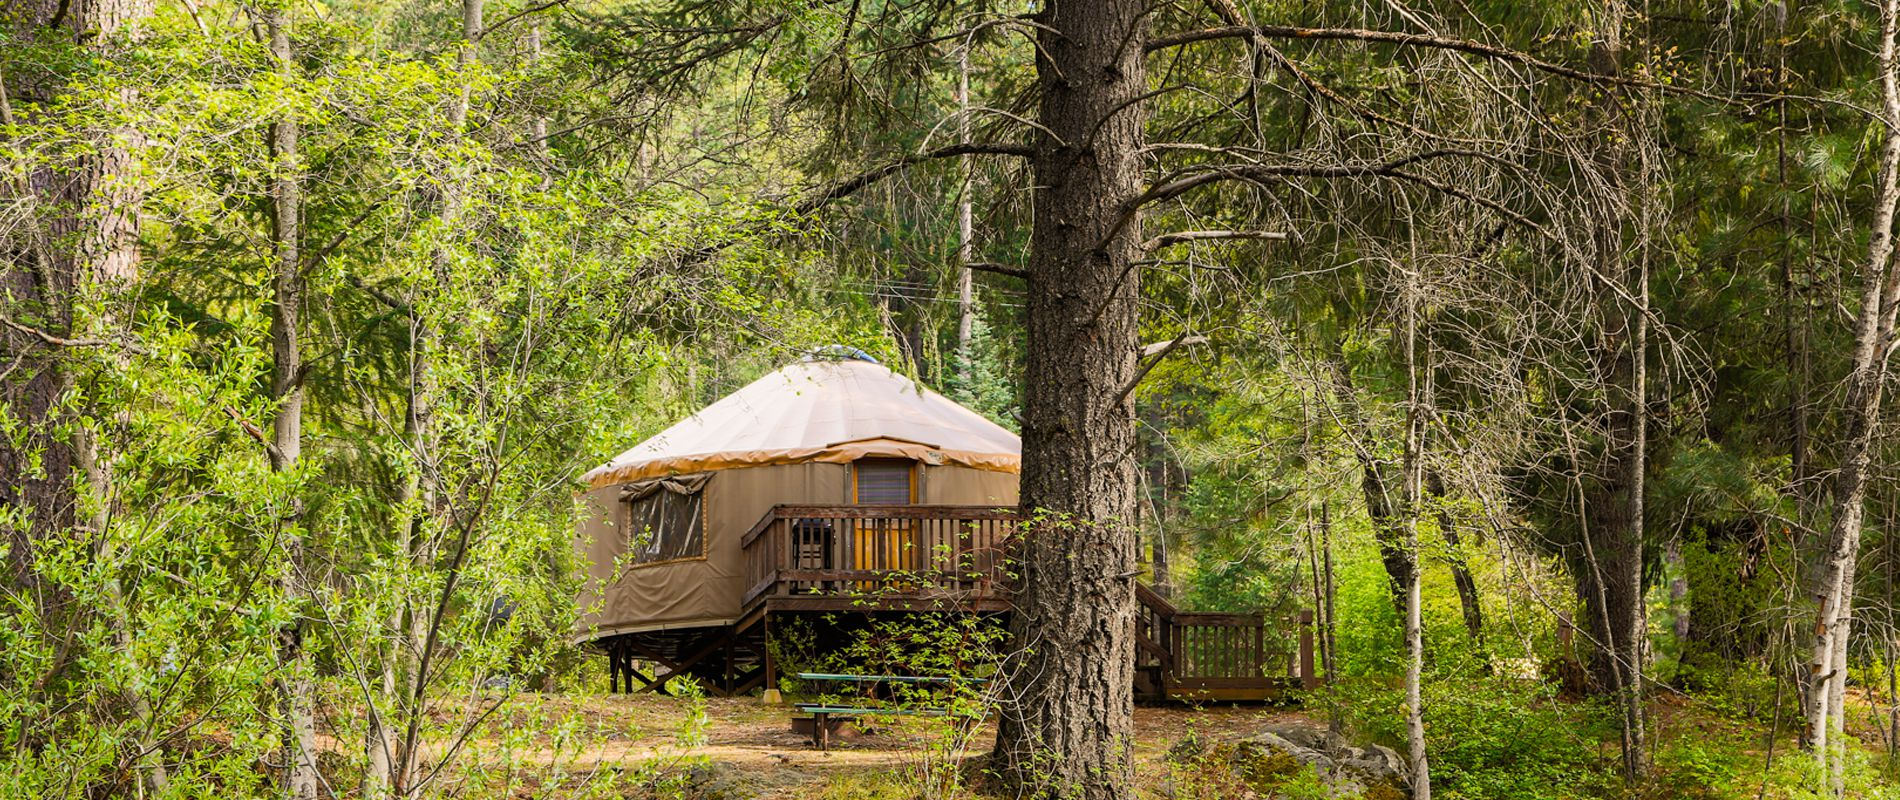 hub usa glamping romantic collections cabins fireplaces mt hood oregon with near